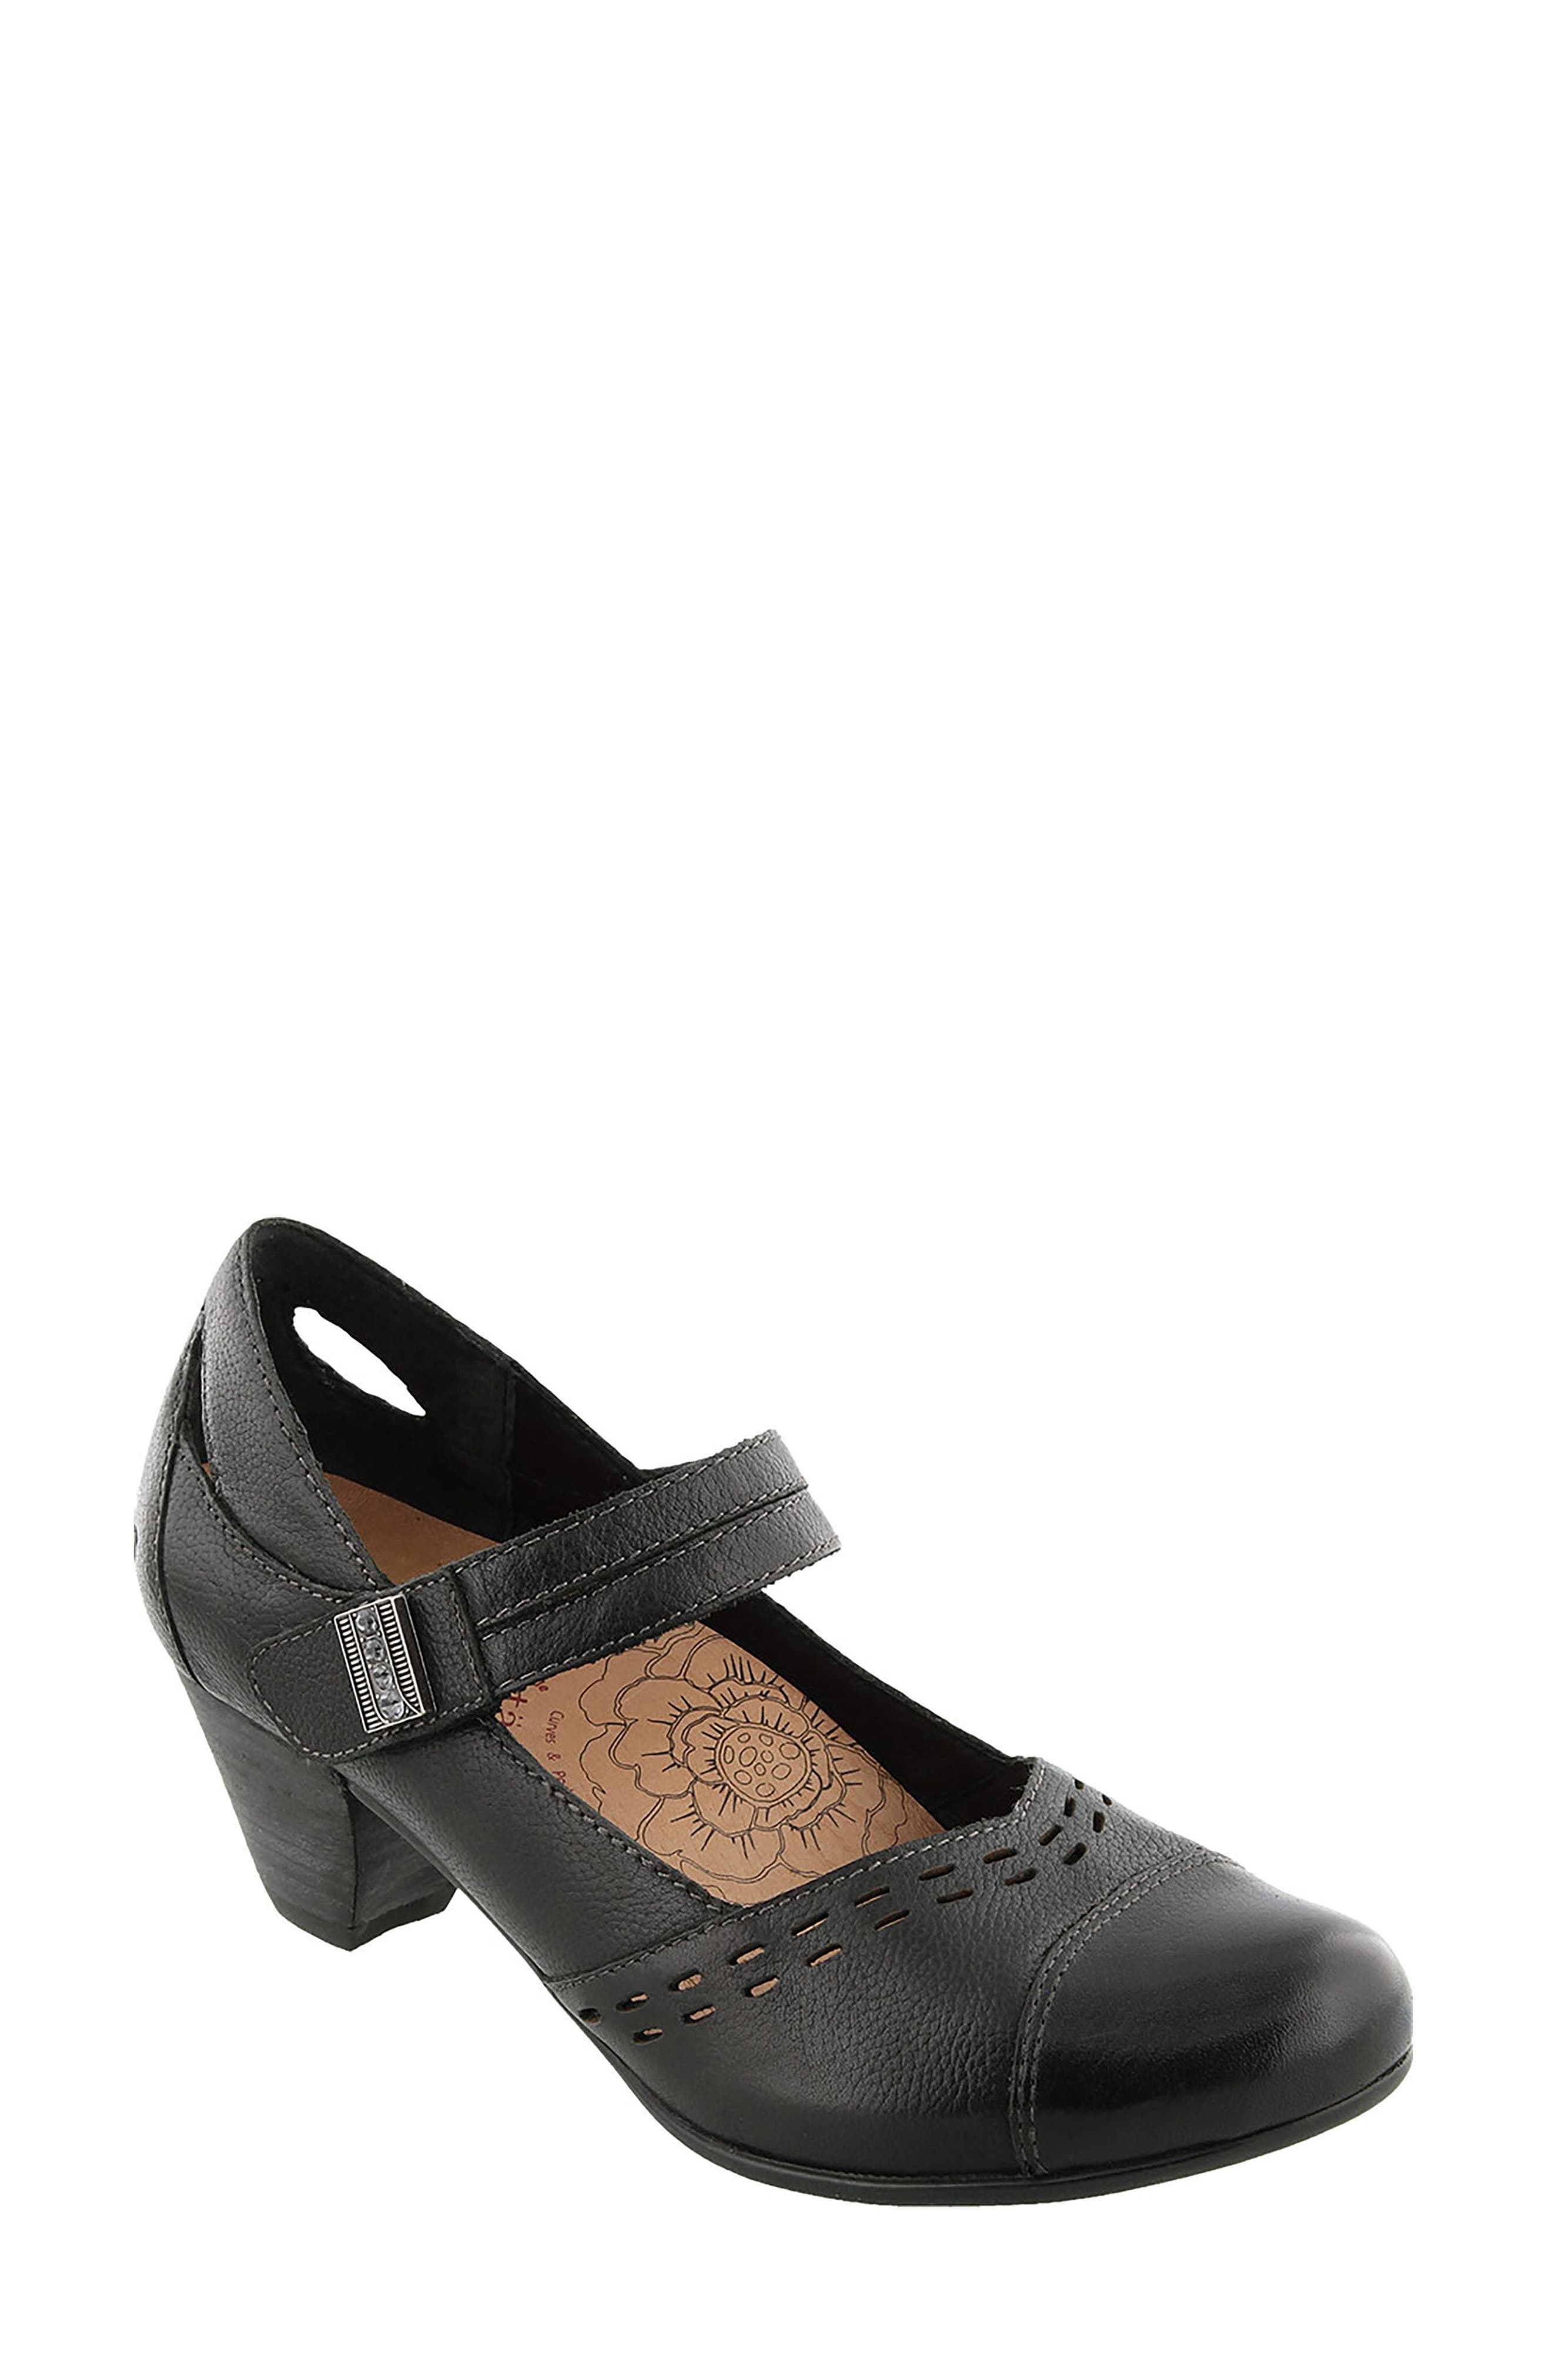 Alternate Image 1 Selected - Taos Stunner Laser Cutout Mary Jane Pump (Women)